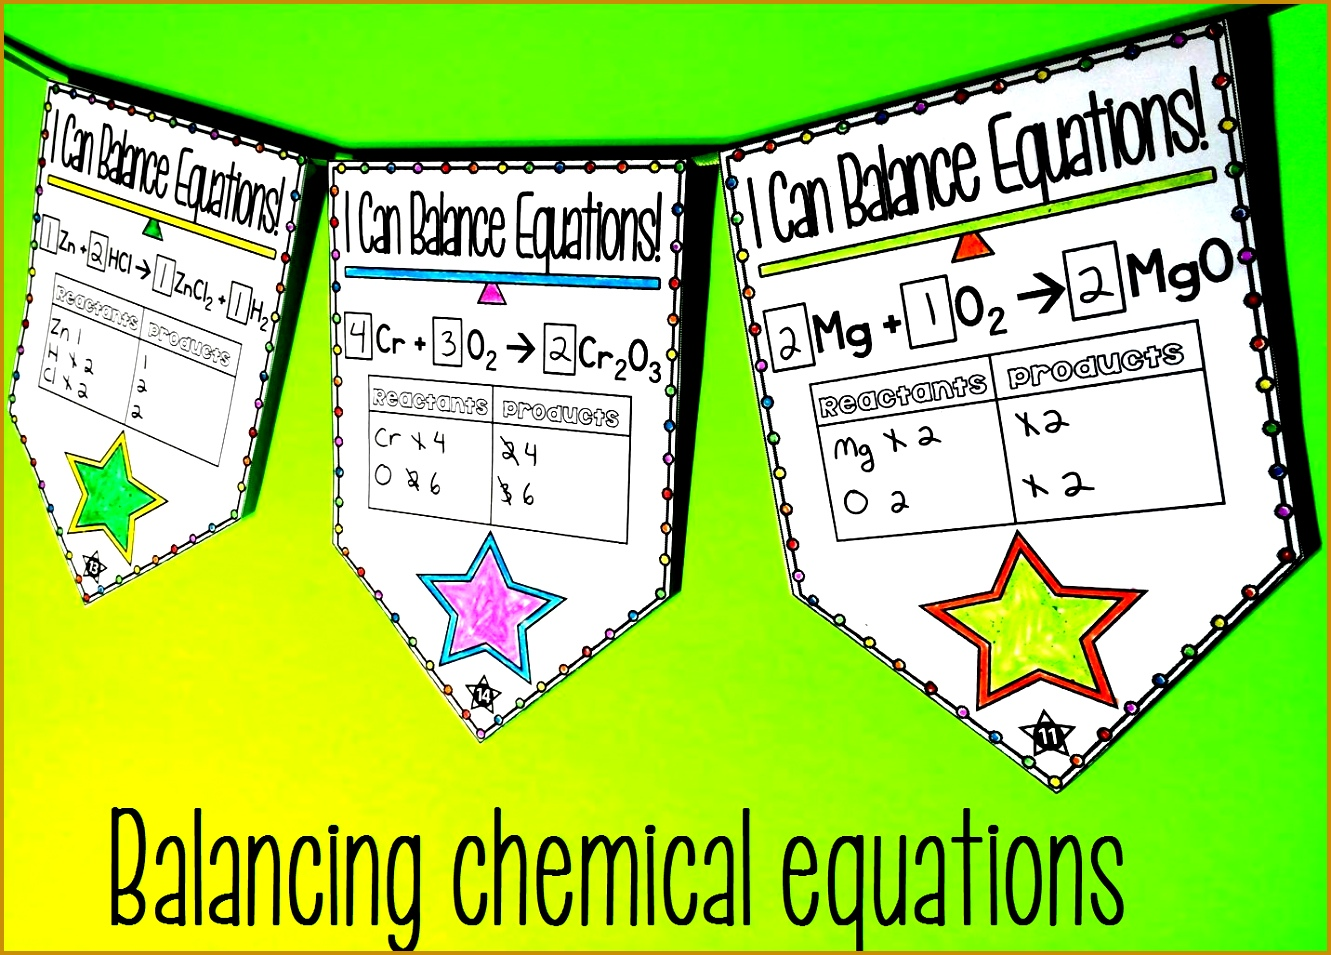 Balancing Chemical Equations Pennant 9551331